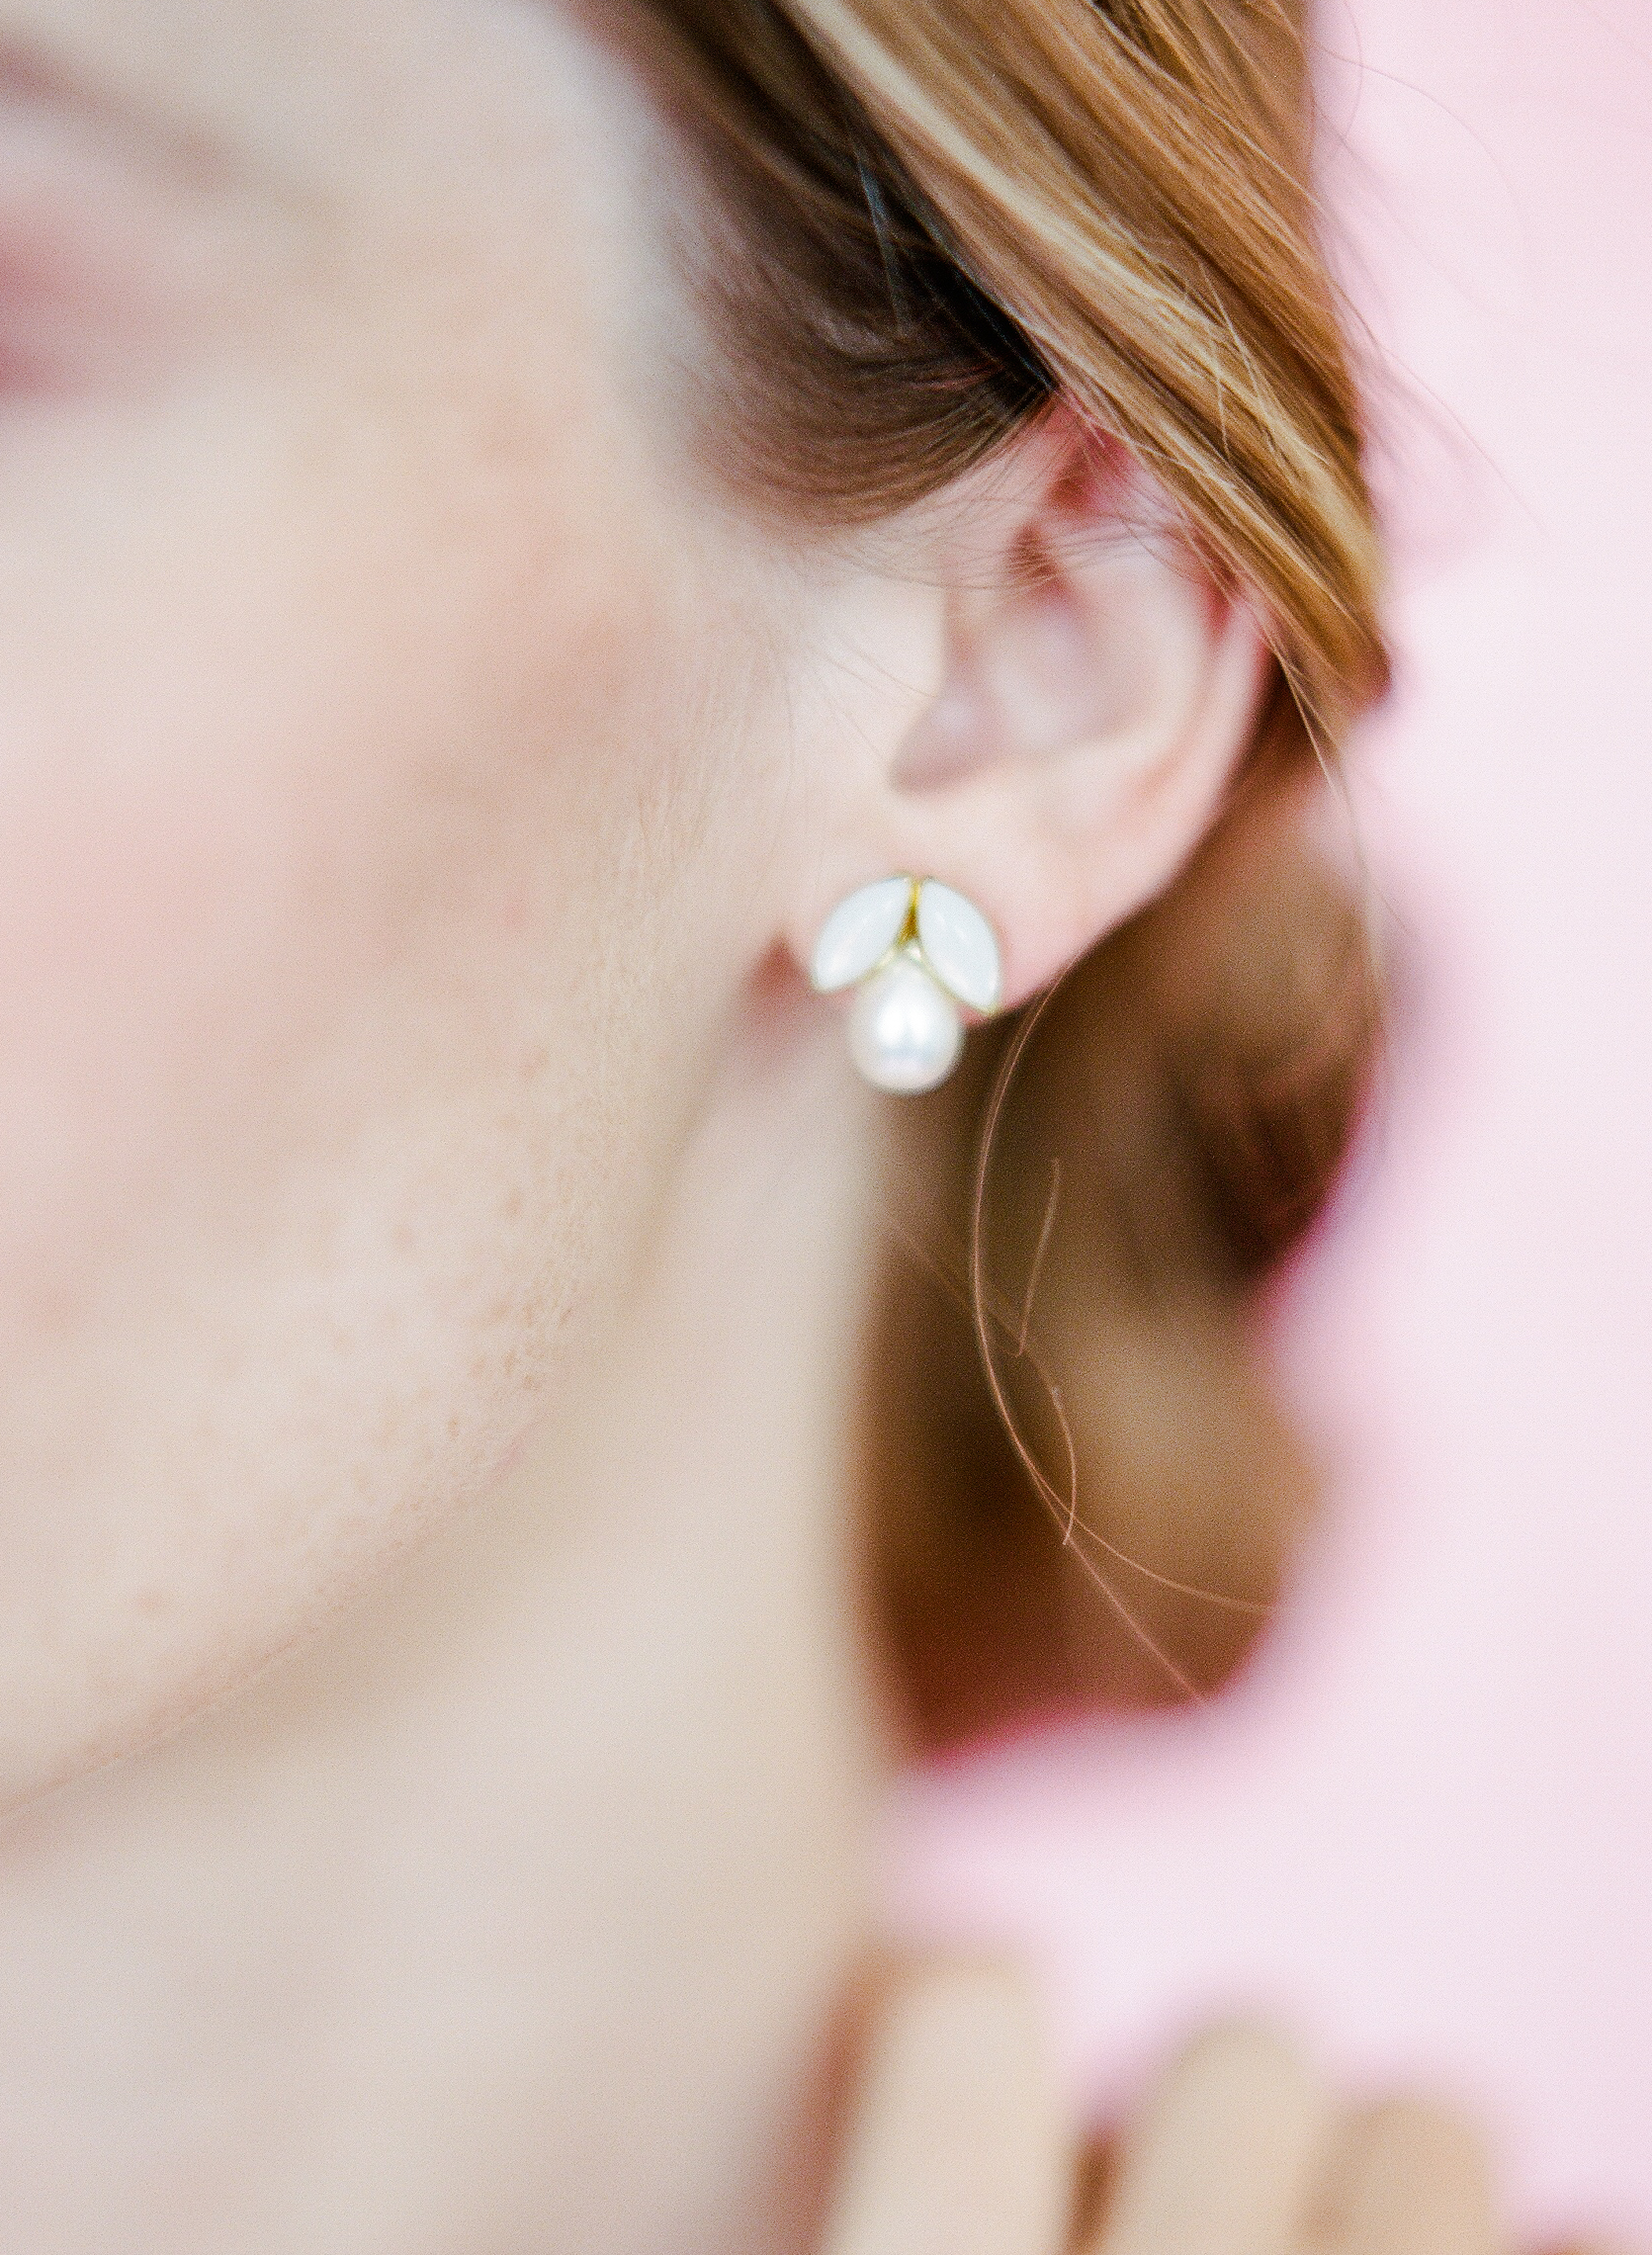 Hushed+Commotion+2018,+Rebecca+Yale,+pearl+and+ivory+stud+earring+detail.jpg